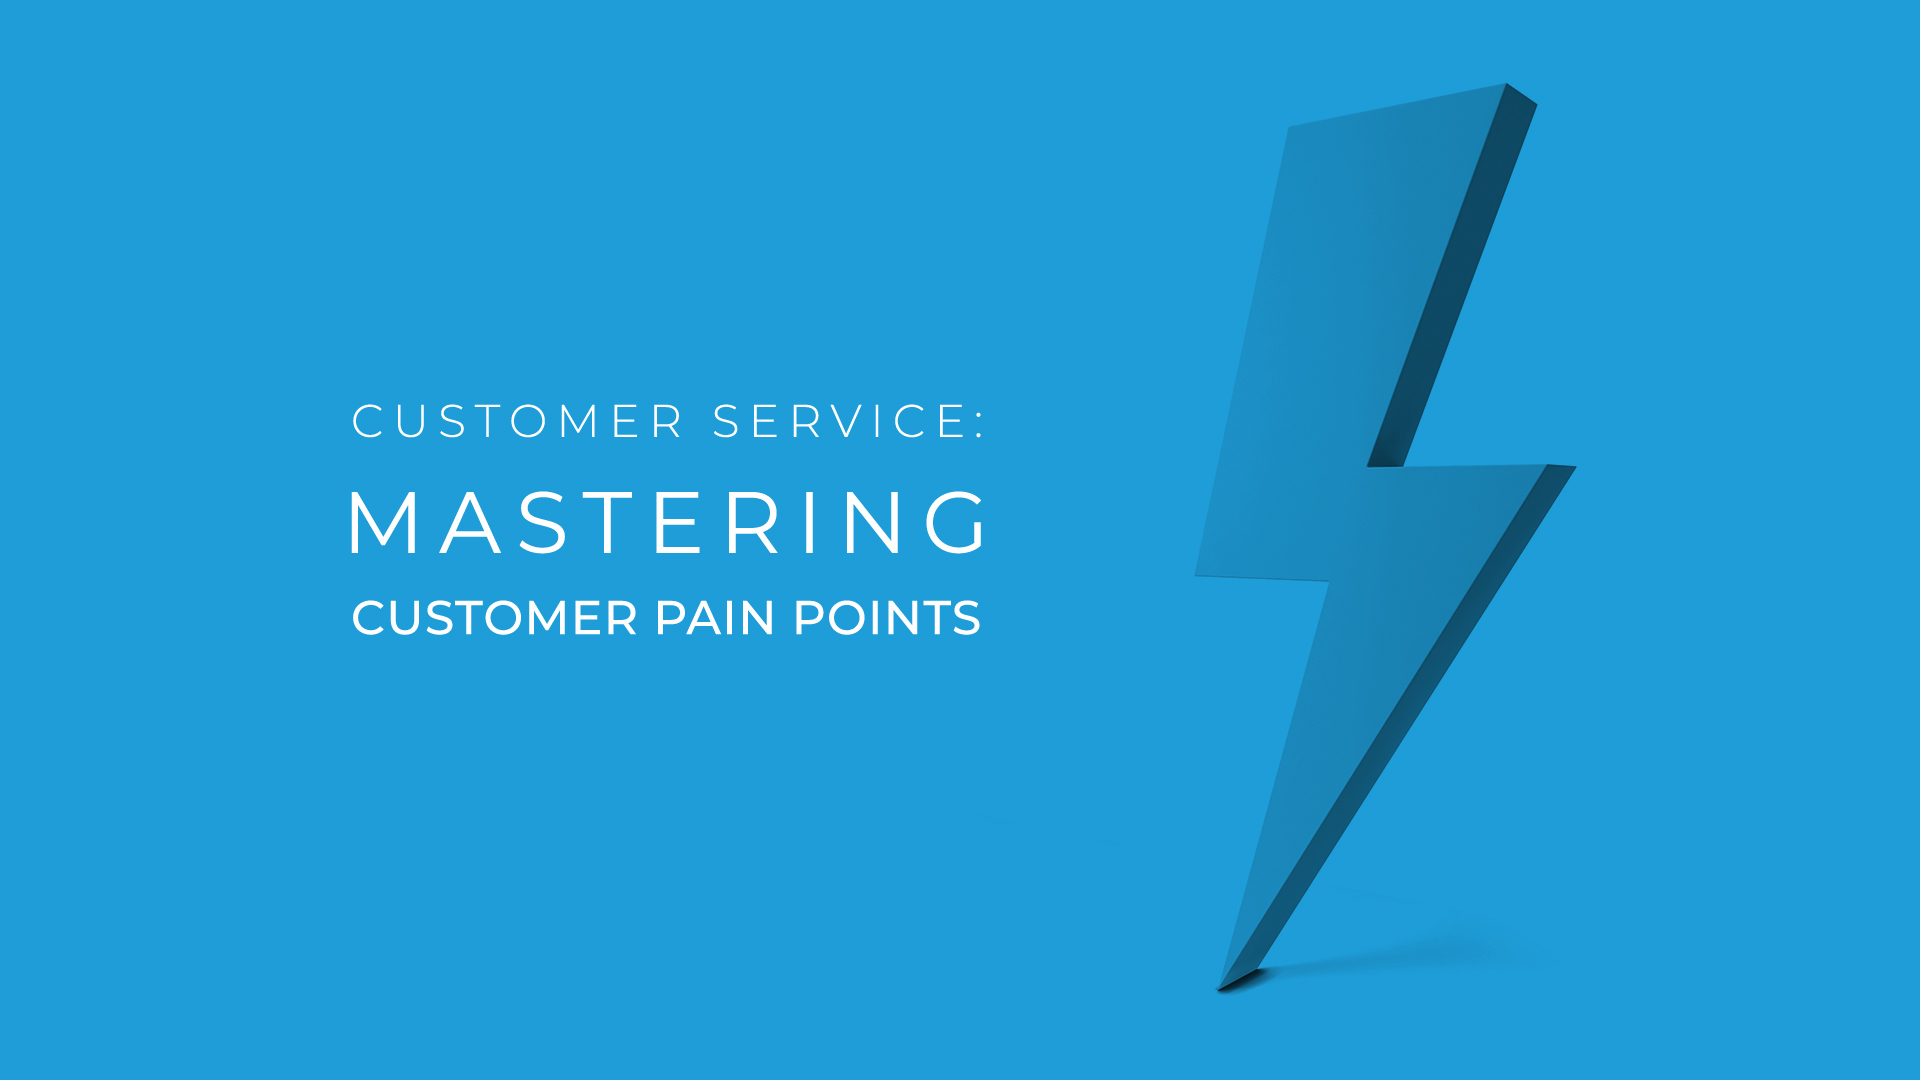 Customer Service: Mastering Customer Pain Points